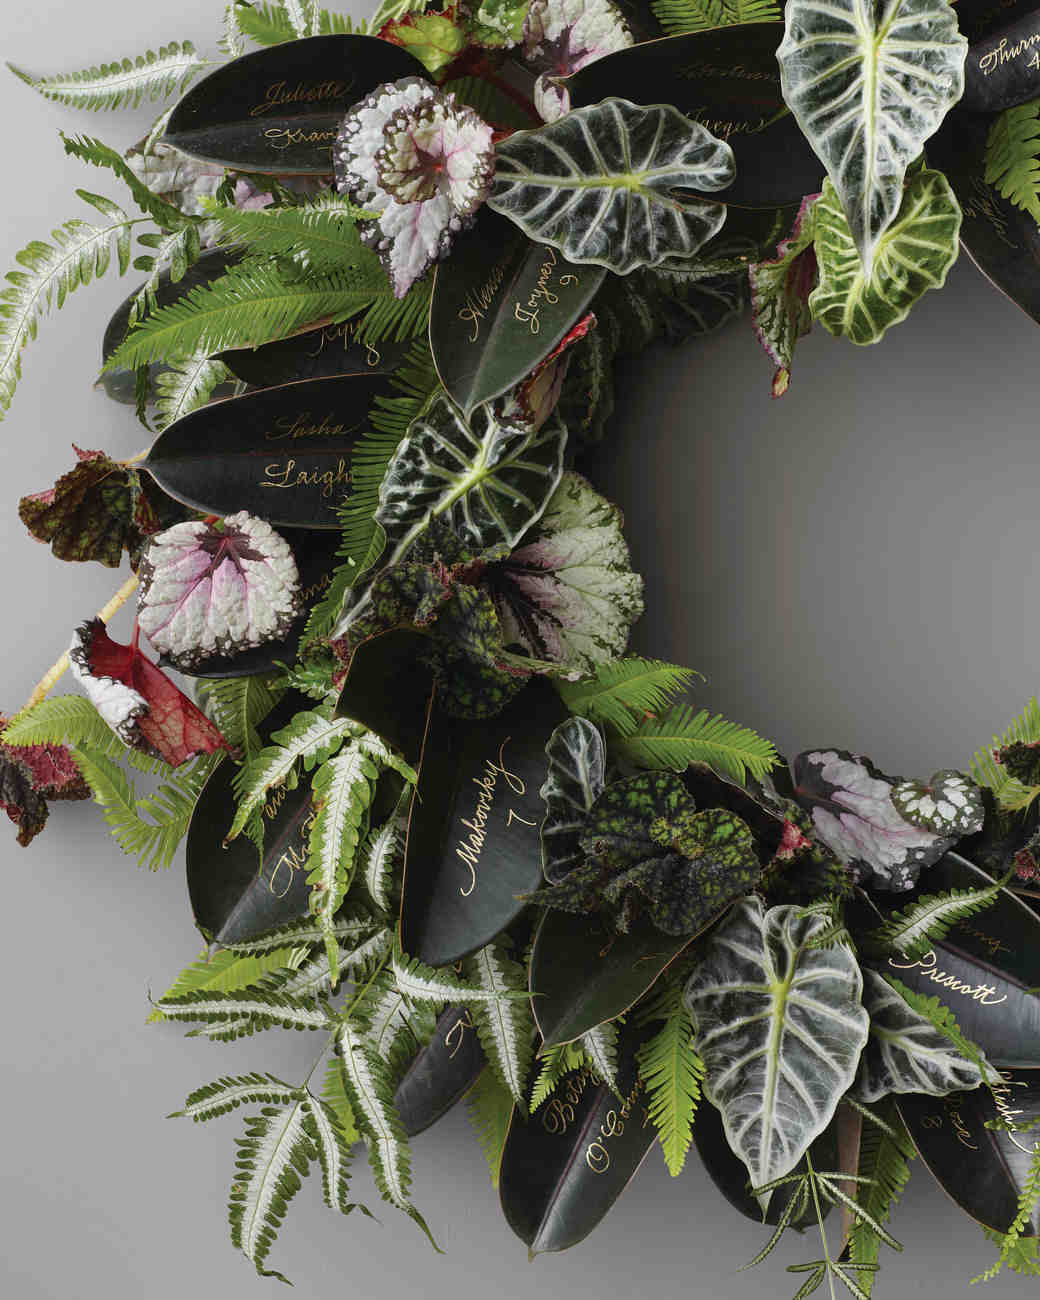 mantle-wreath-203-exp2-shd-mwd110471.jpg